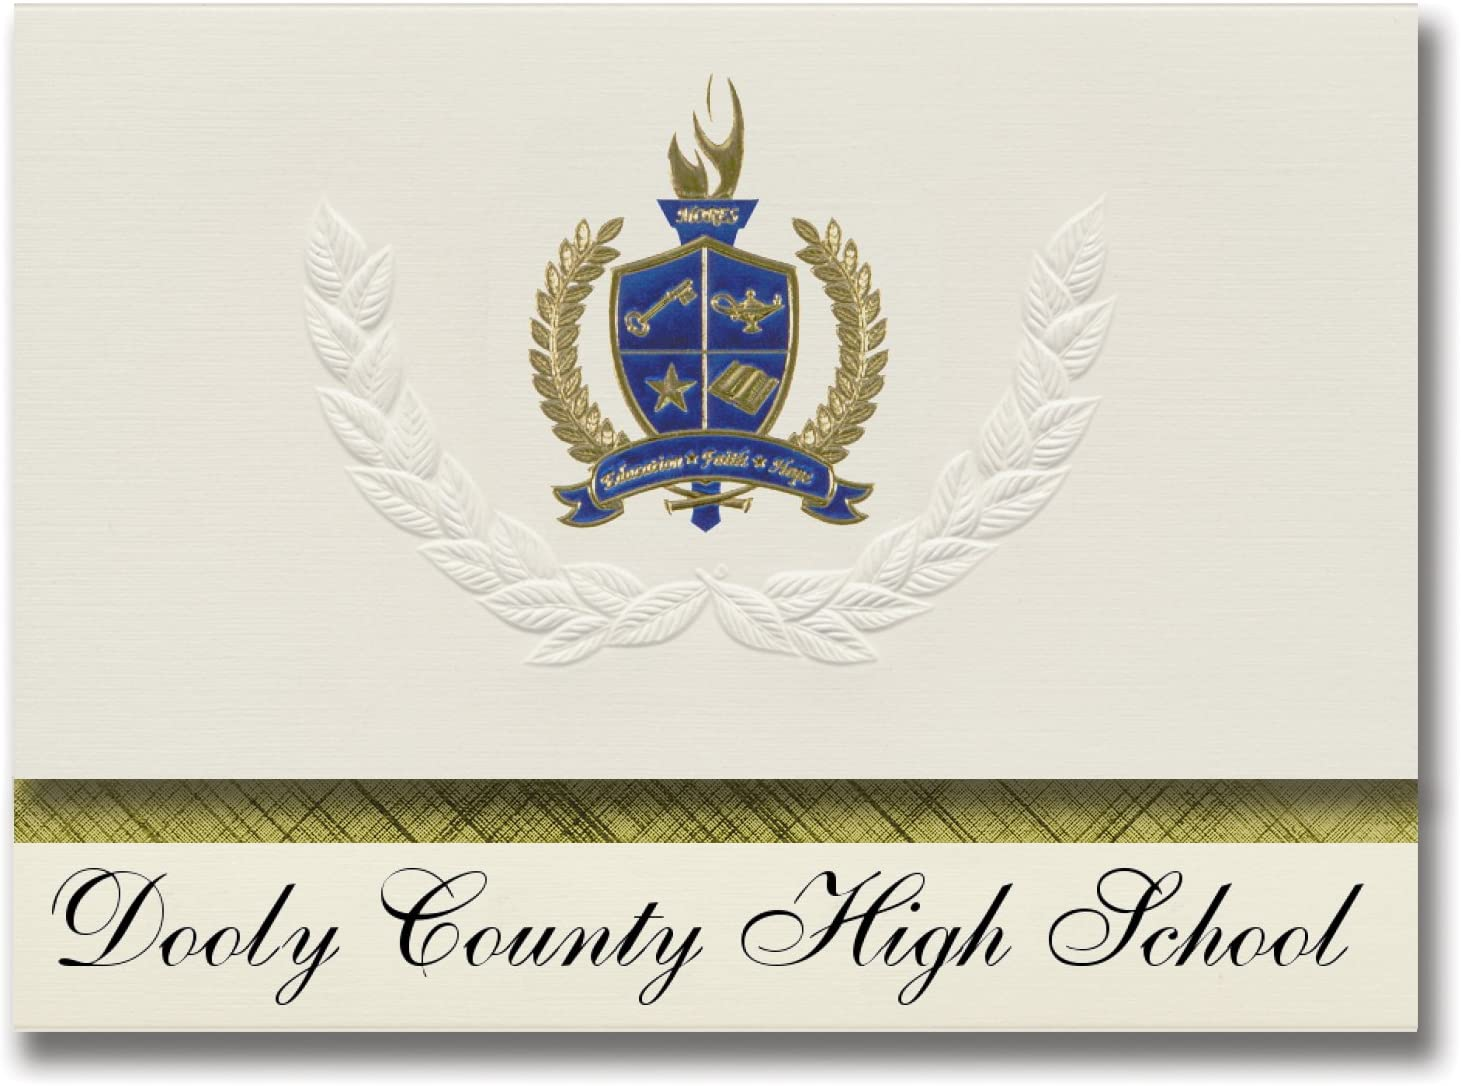 Signature Announcements Dooly County High School (Vienna, GA) Graduation Announcements, Presidential style, Elite package of 25 with Gold & Blue Metallic Foil seal